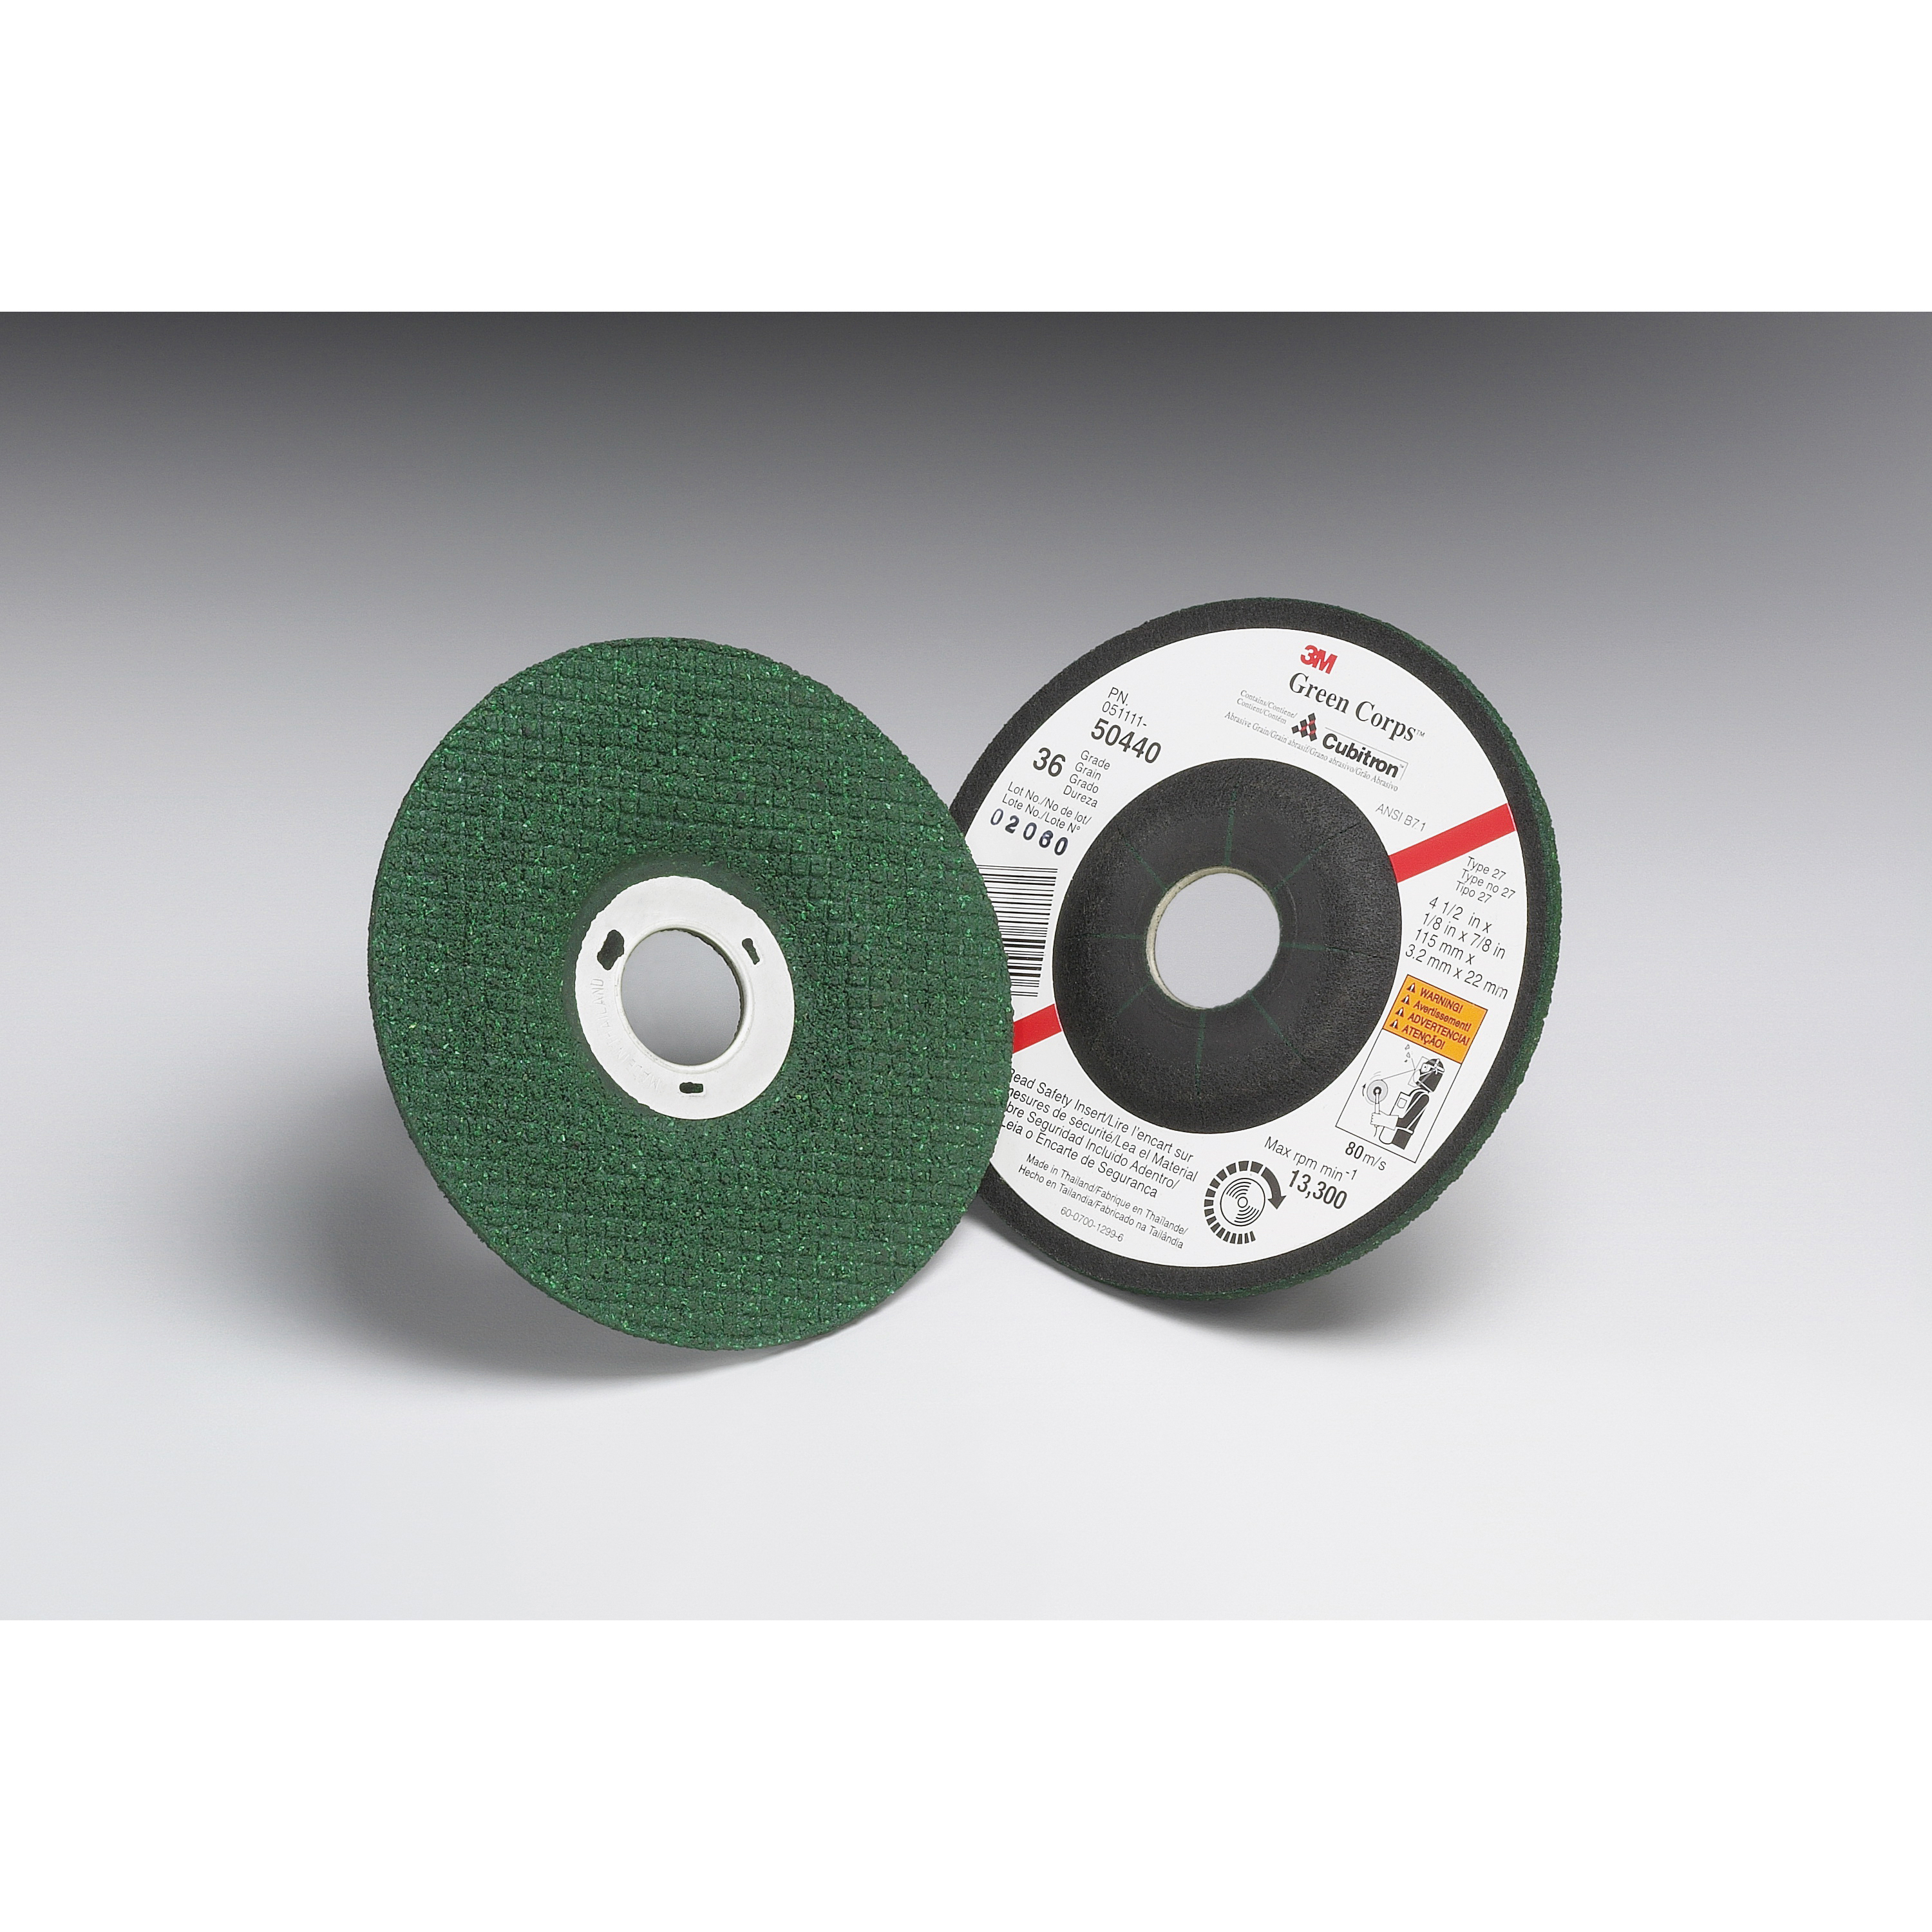 Green Corps™ 01994 Straight Cut-Off Wheel, 4 in Dia x 1/32 in THK, 3/8 in Center Hole, Ceramic Abrasive